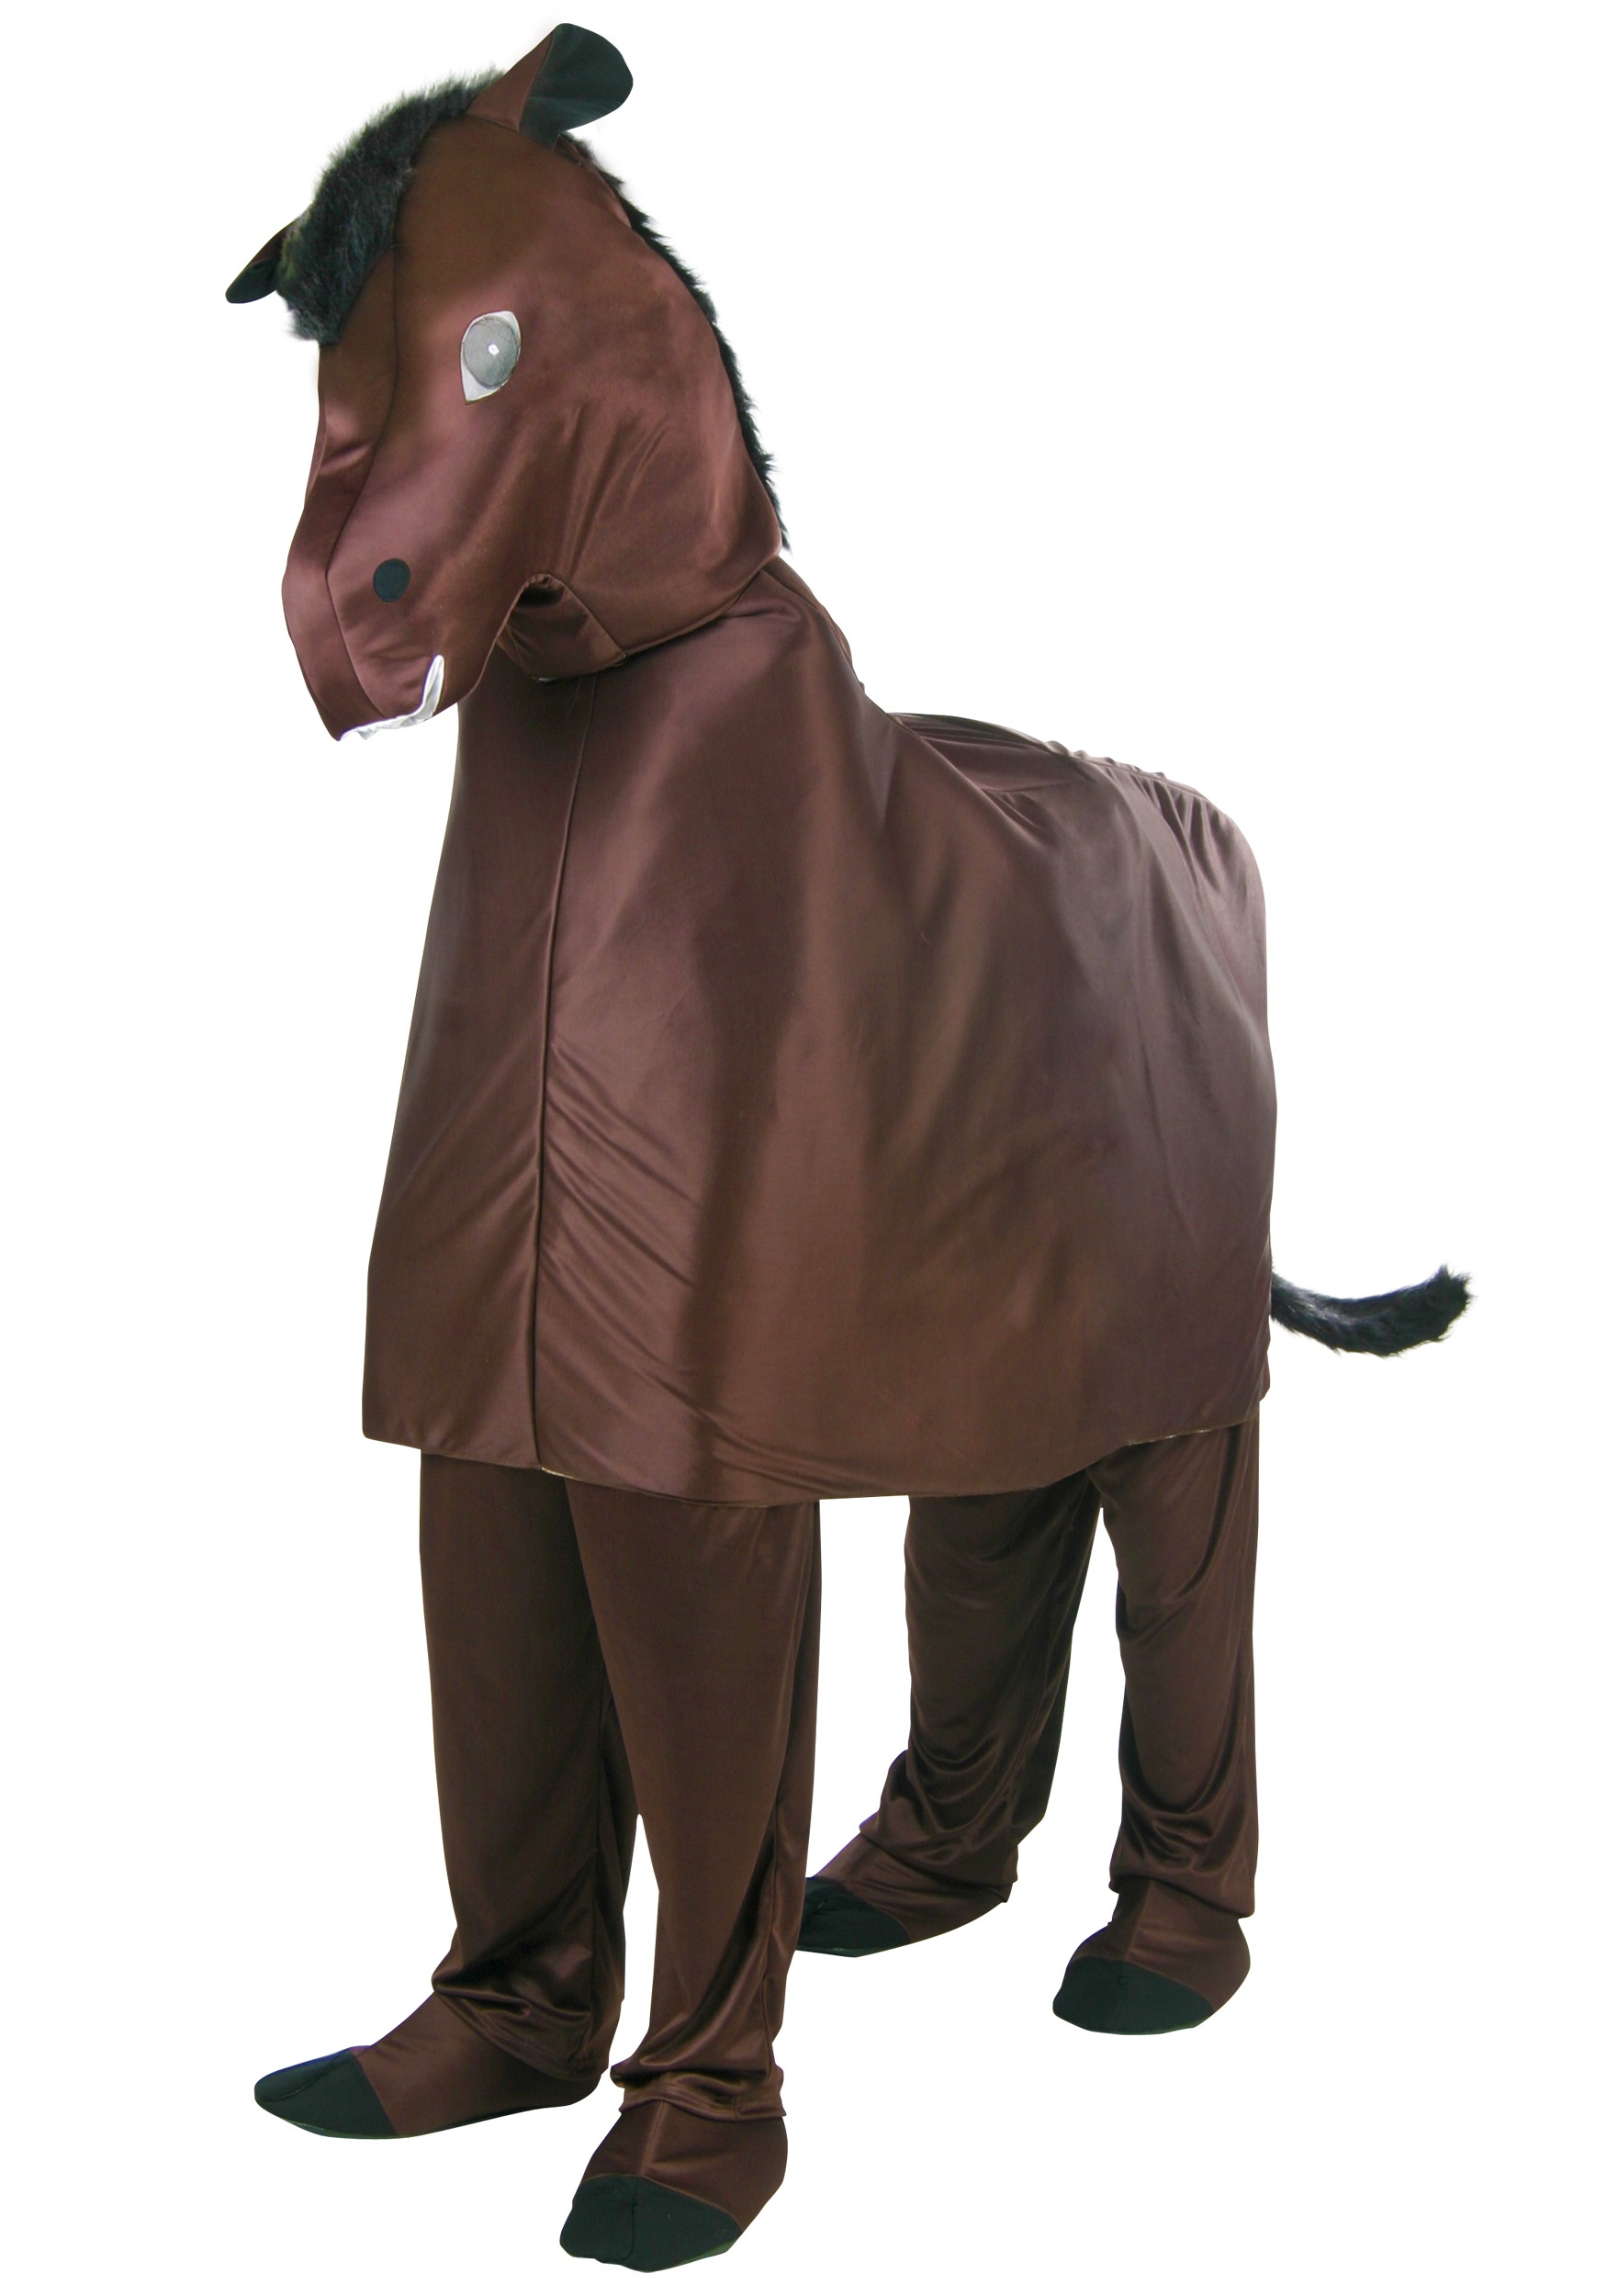 Horse Costume For 2 People